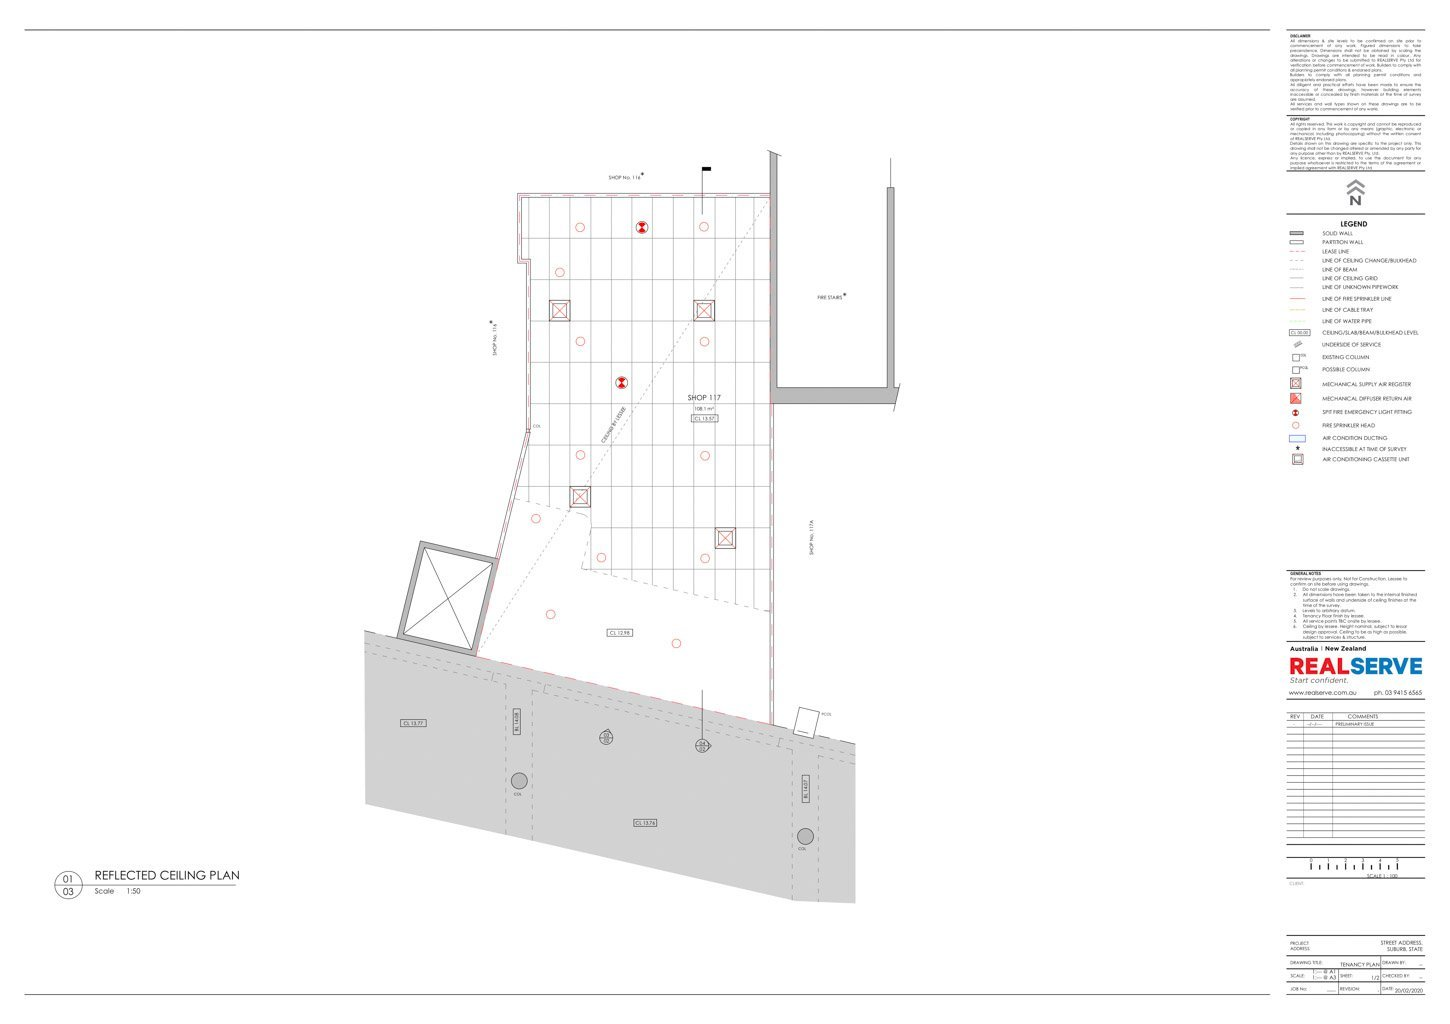 REALSERVE GENERAL TENANCY PLAN WITH REFLECTED CEILING PLAN SAMPLE OF A COMMERCIAL PROPERTY